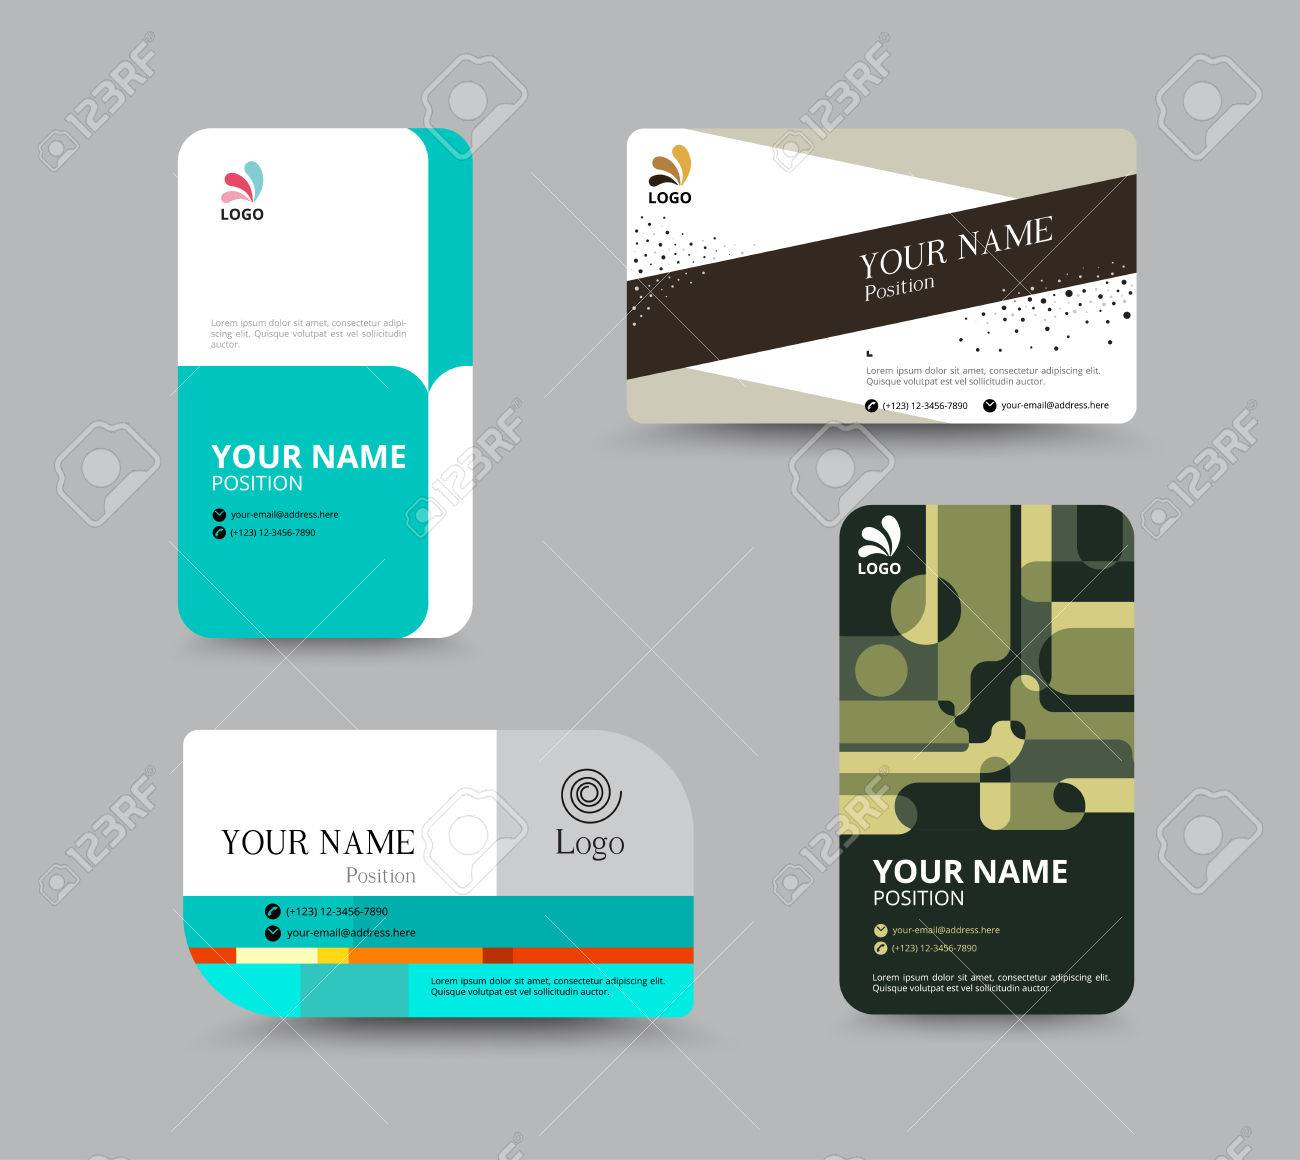 Business card template business card layout design vector business card template business card layout design vector illustration stock vector 41842395 accmission Choice Image